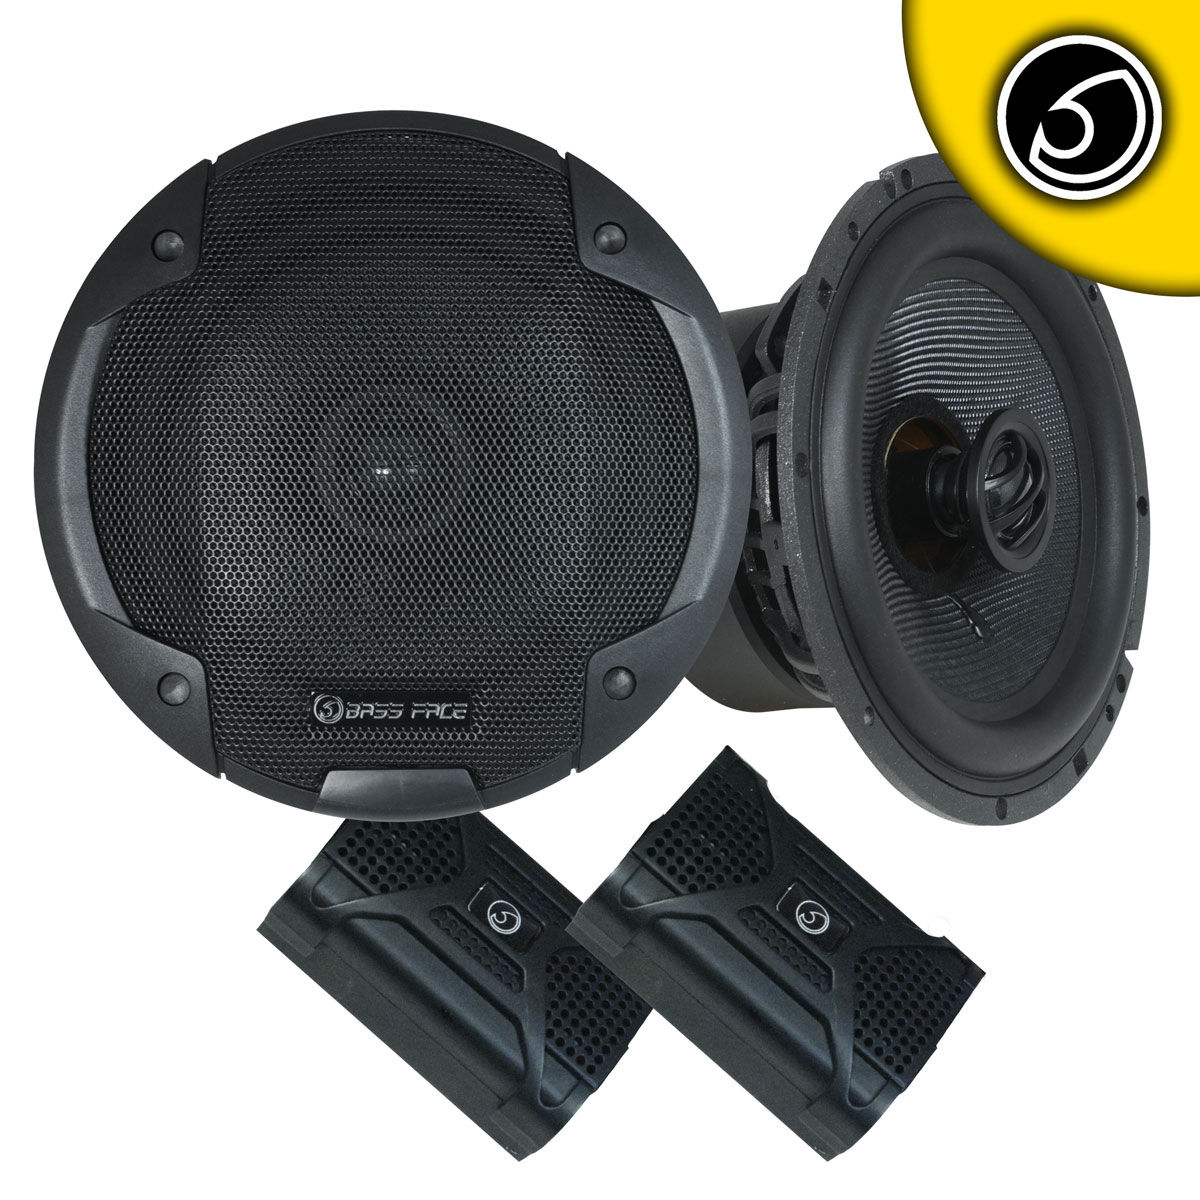 "Bassface BLACKSPL6.1 740w 6.5"" Inch 17cm SQ Coaxial 2Way Car Door Speakers Pair"